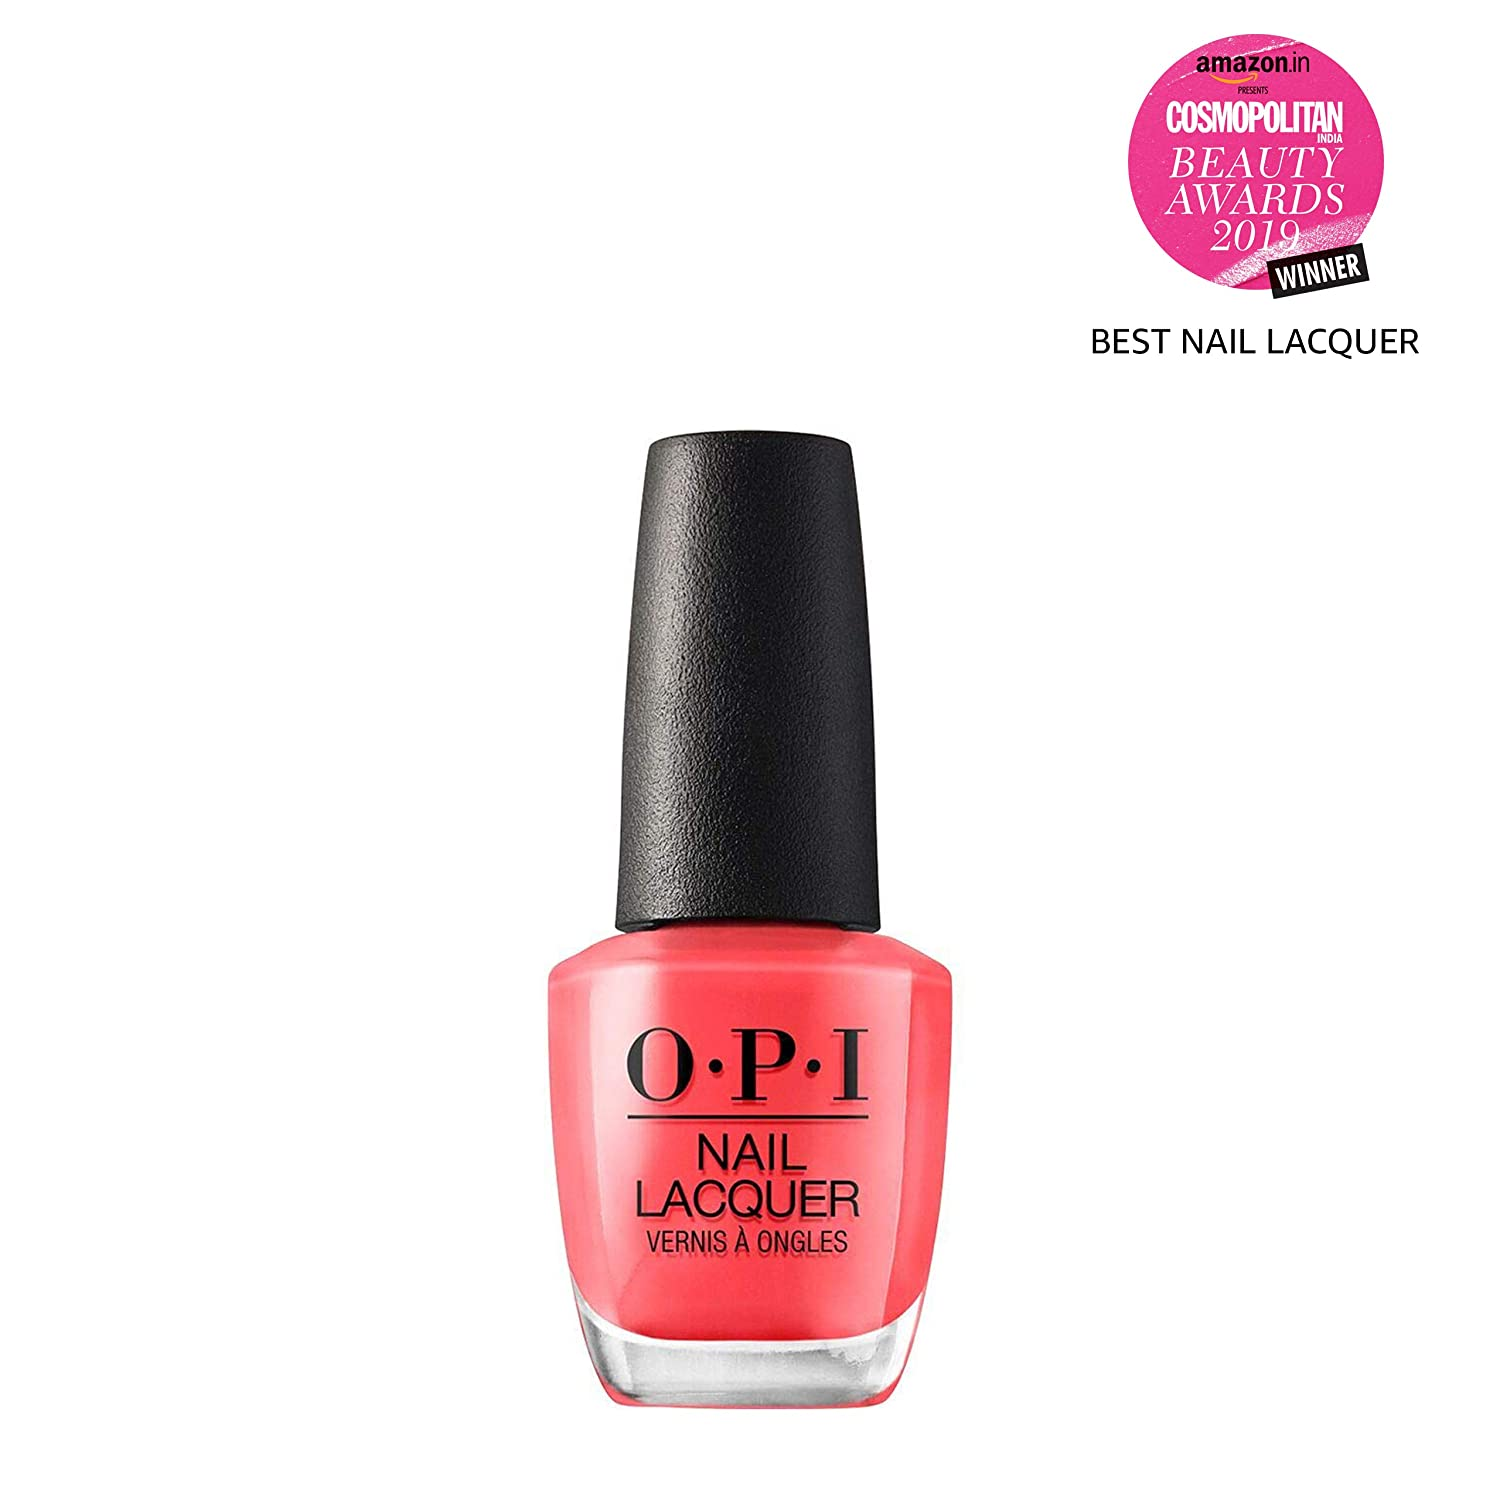 Amazon.com: OPI Nail Lacquer, Hot & Spicy, 0.5 fl. oz.: Luxury Beauty